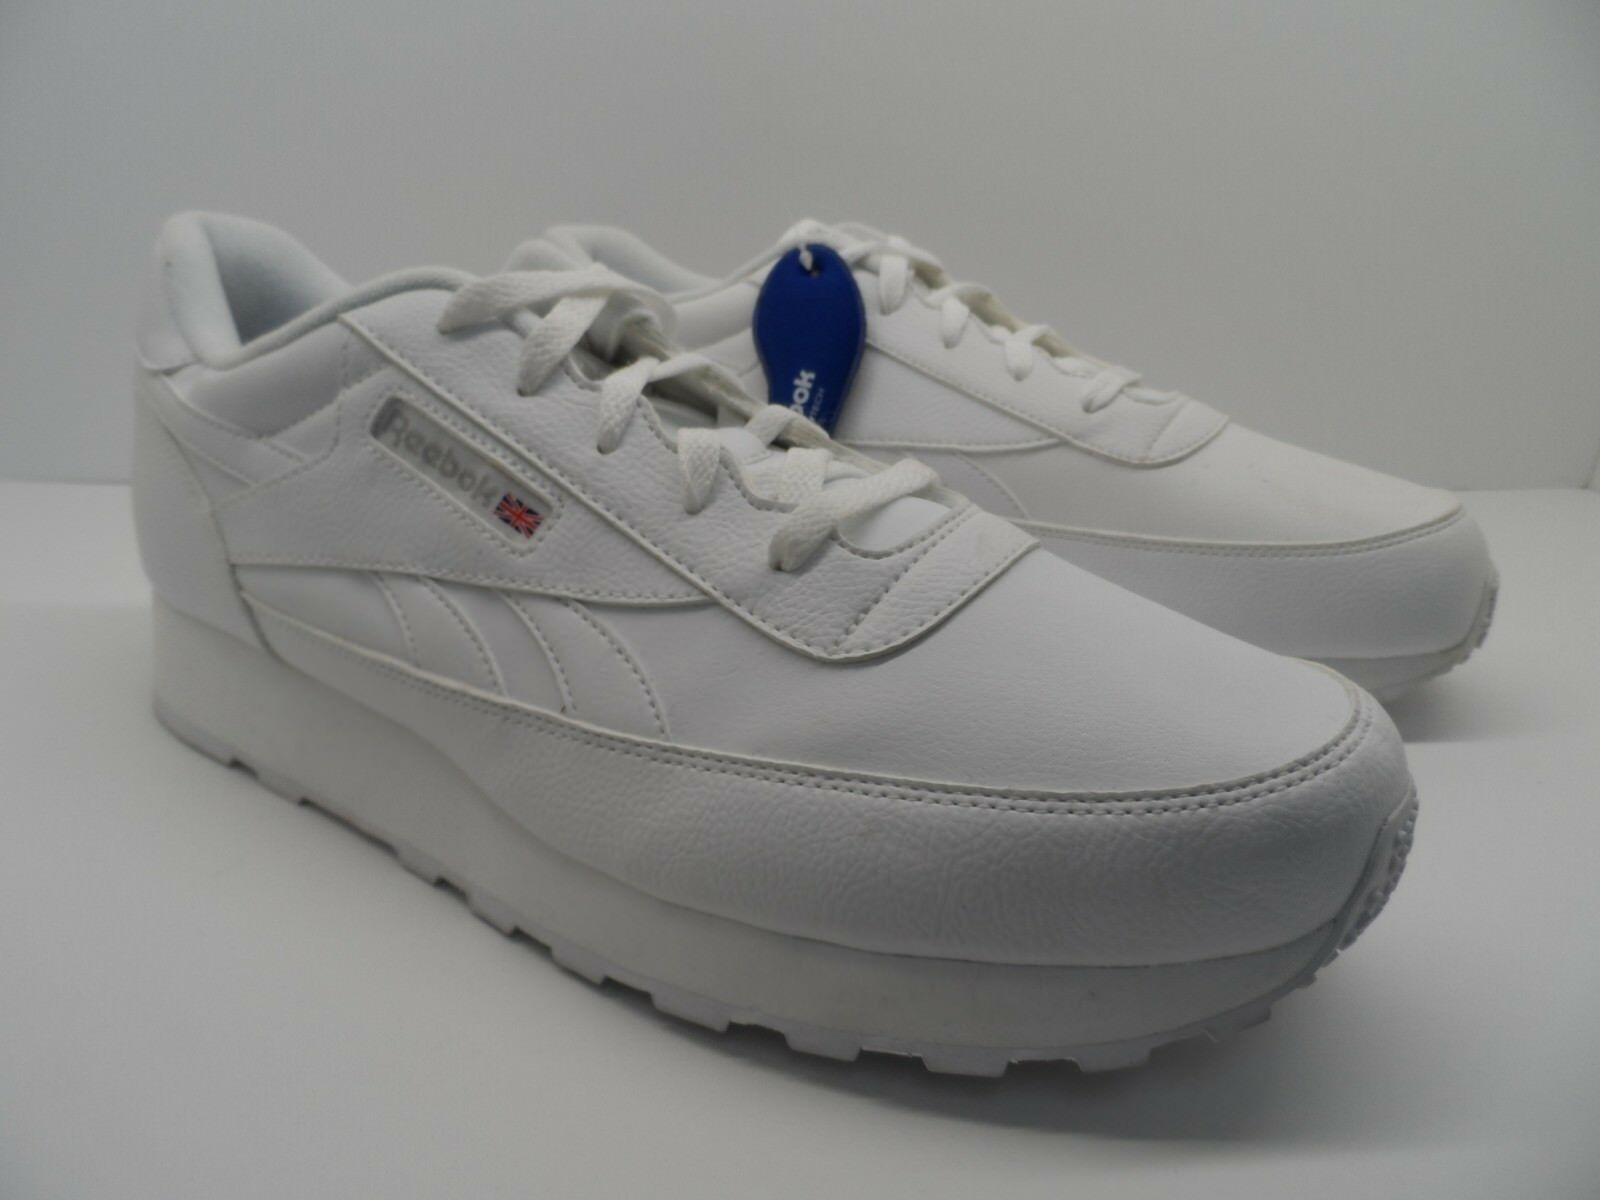 9bfba4c568945 Reebok Men s Classic Renaissance V66940 Athletic Shoe White Size 12M 12M  12M 88646e